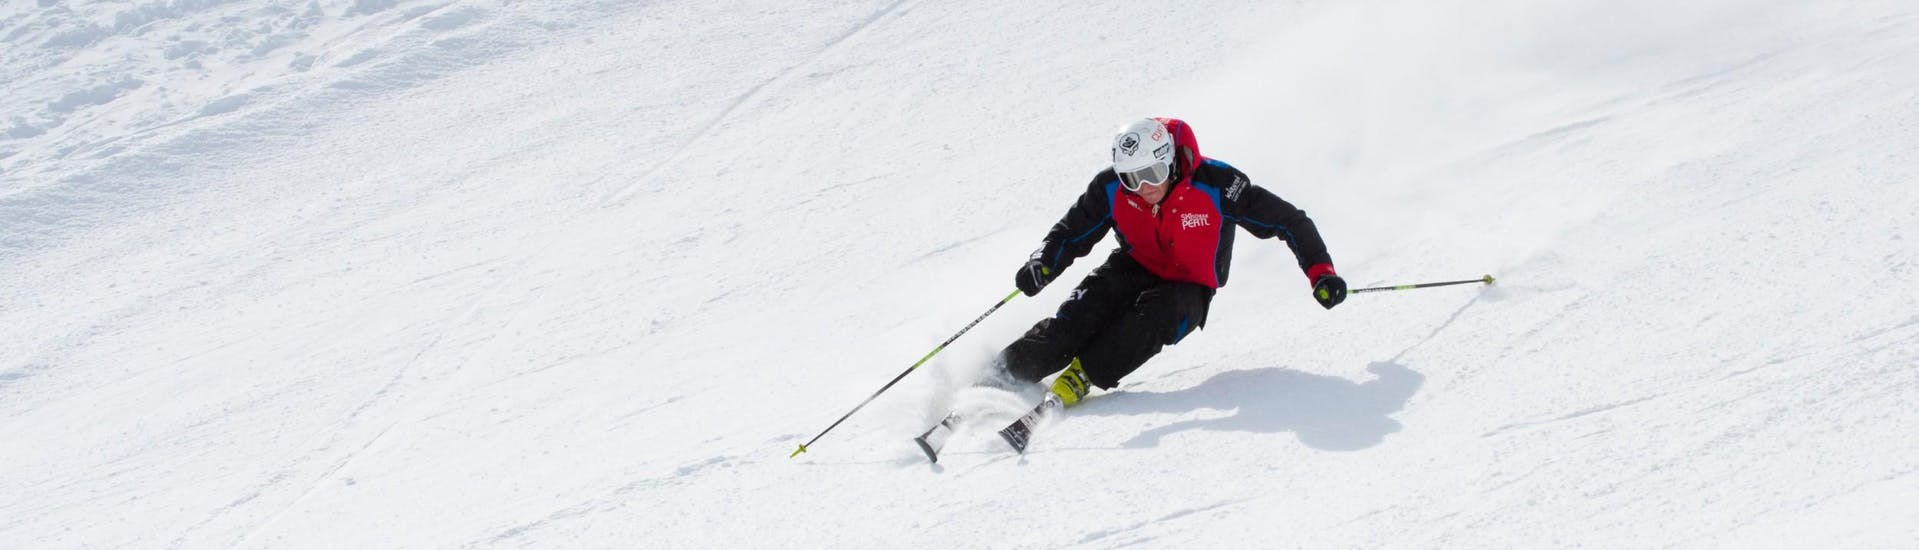 Adult Ski Lessons for All Levels with Skischule Pertl Turracher Höhe - Hero image